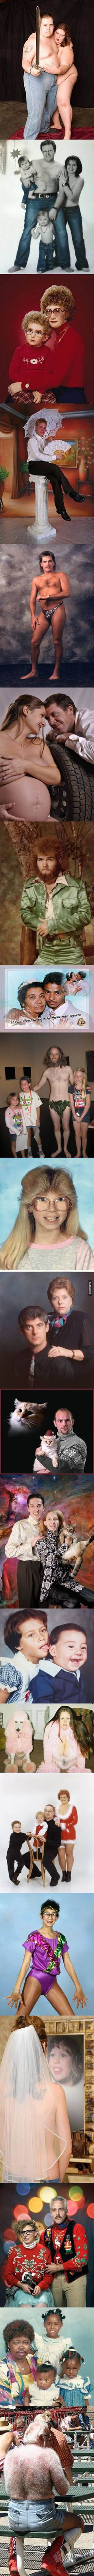 Most awkward family photo I have ever seen...